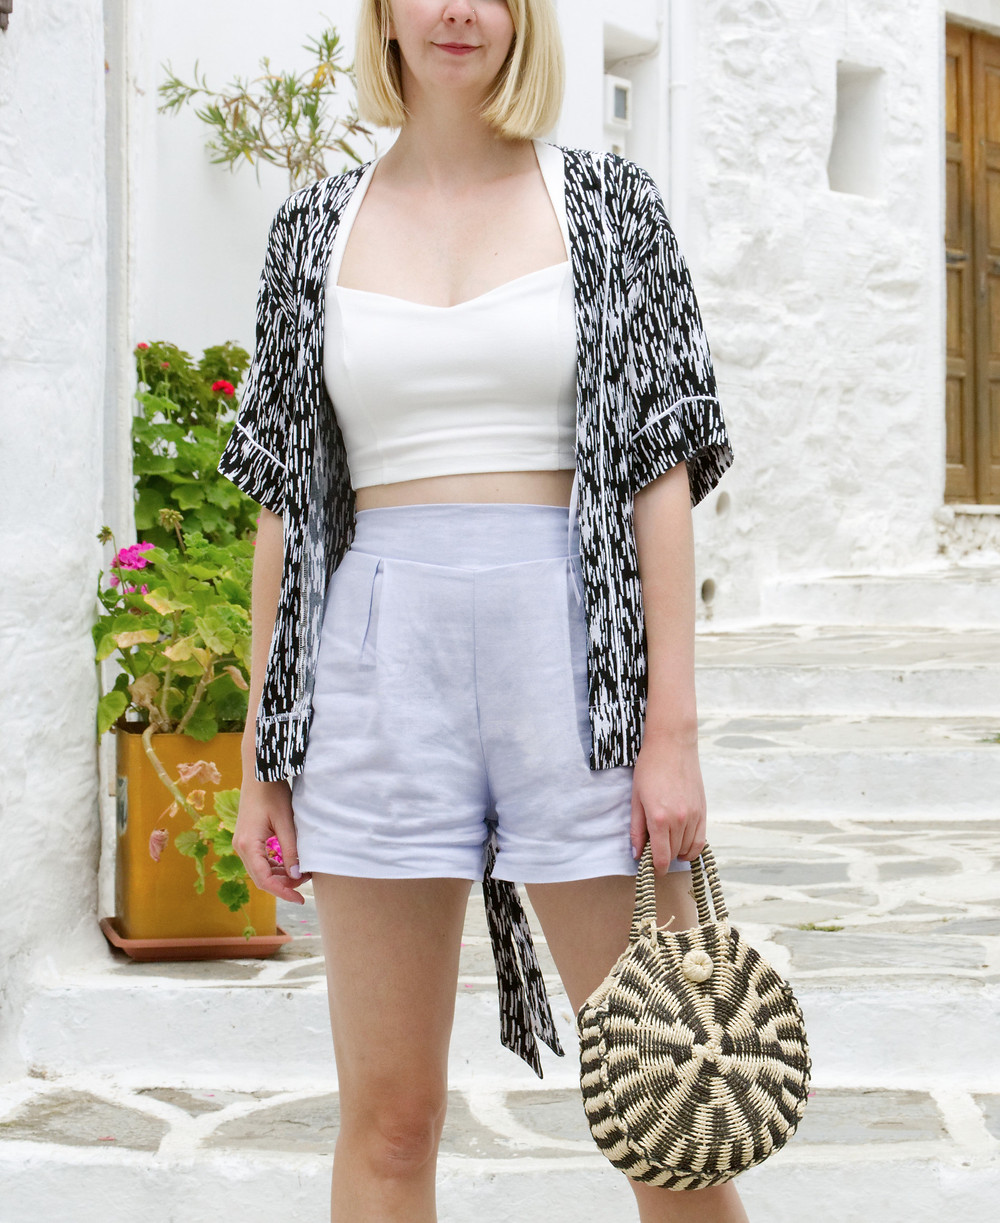 Holiday outfit with kimono, crop top and shorts